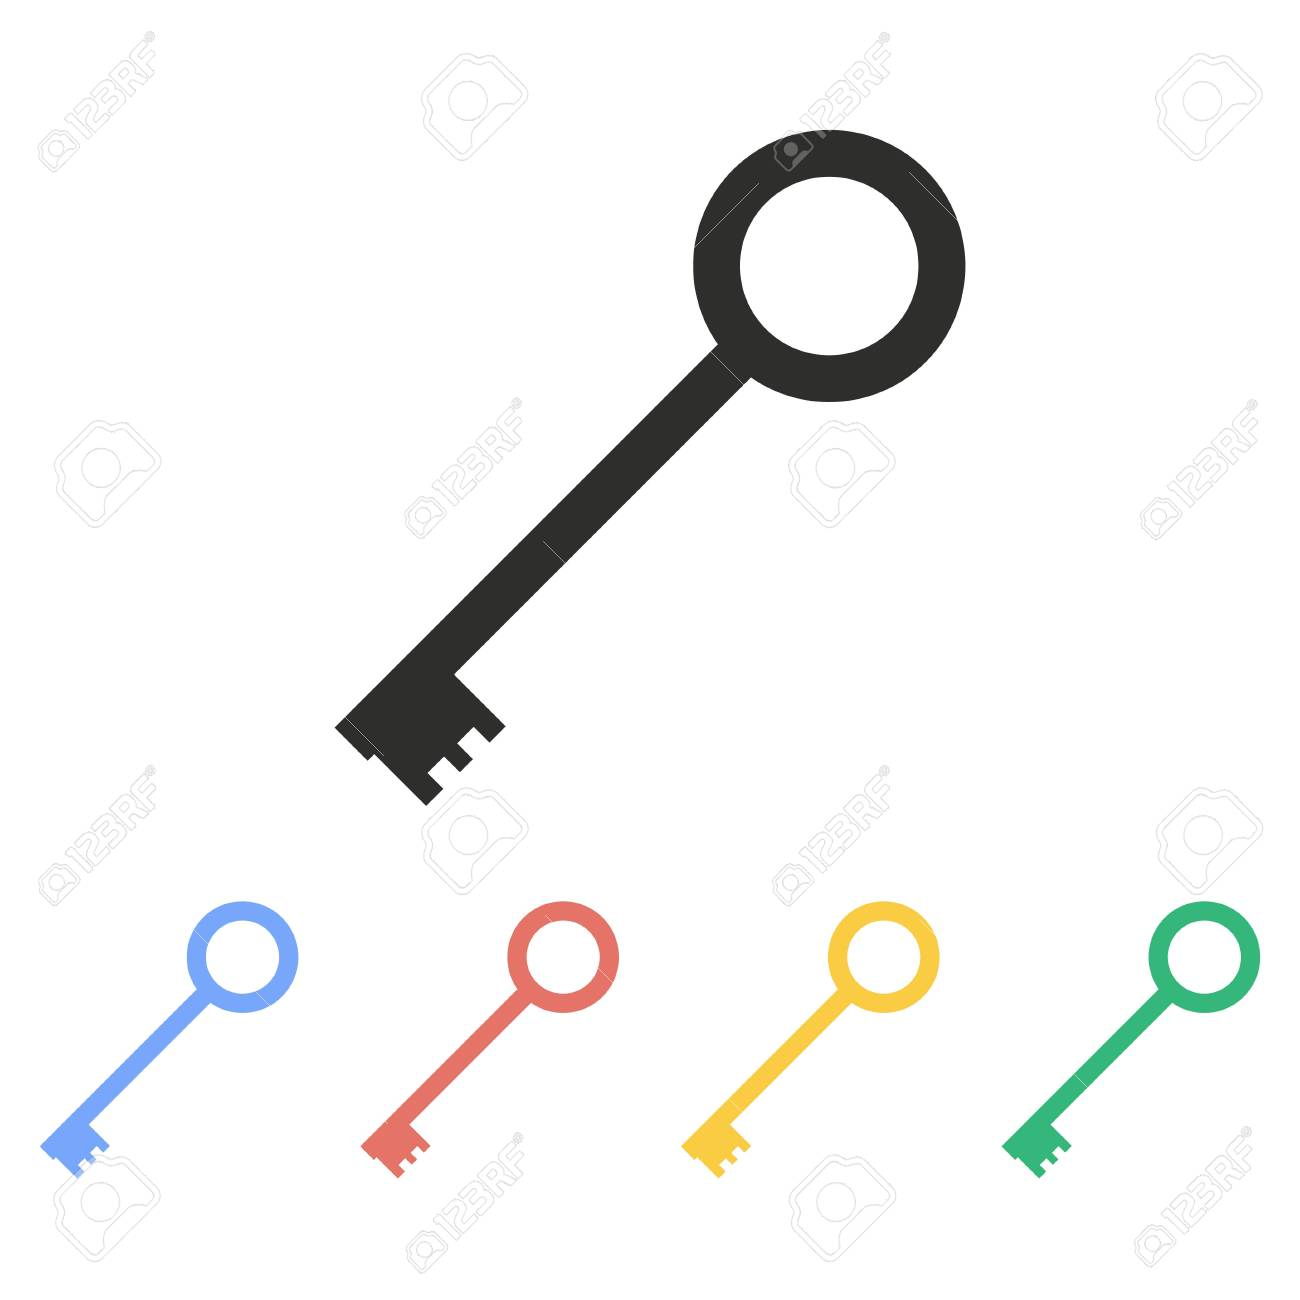 key vector icon illustration isolated on white background for rh 123rf com key vector graphic key vector freepik